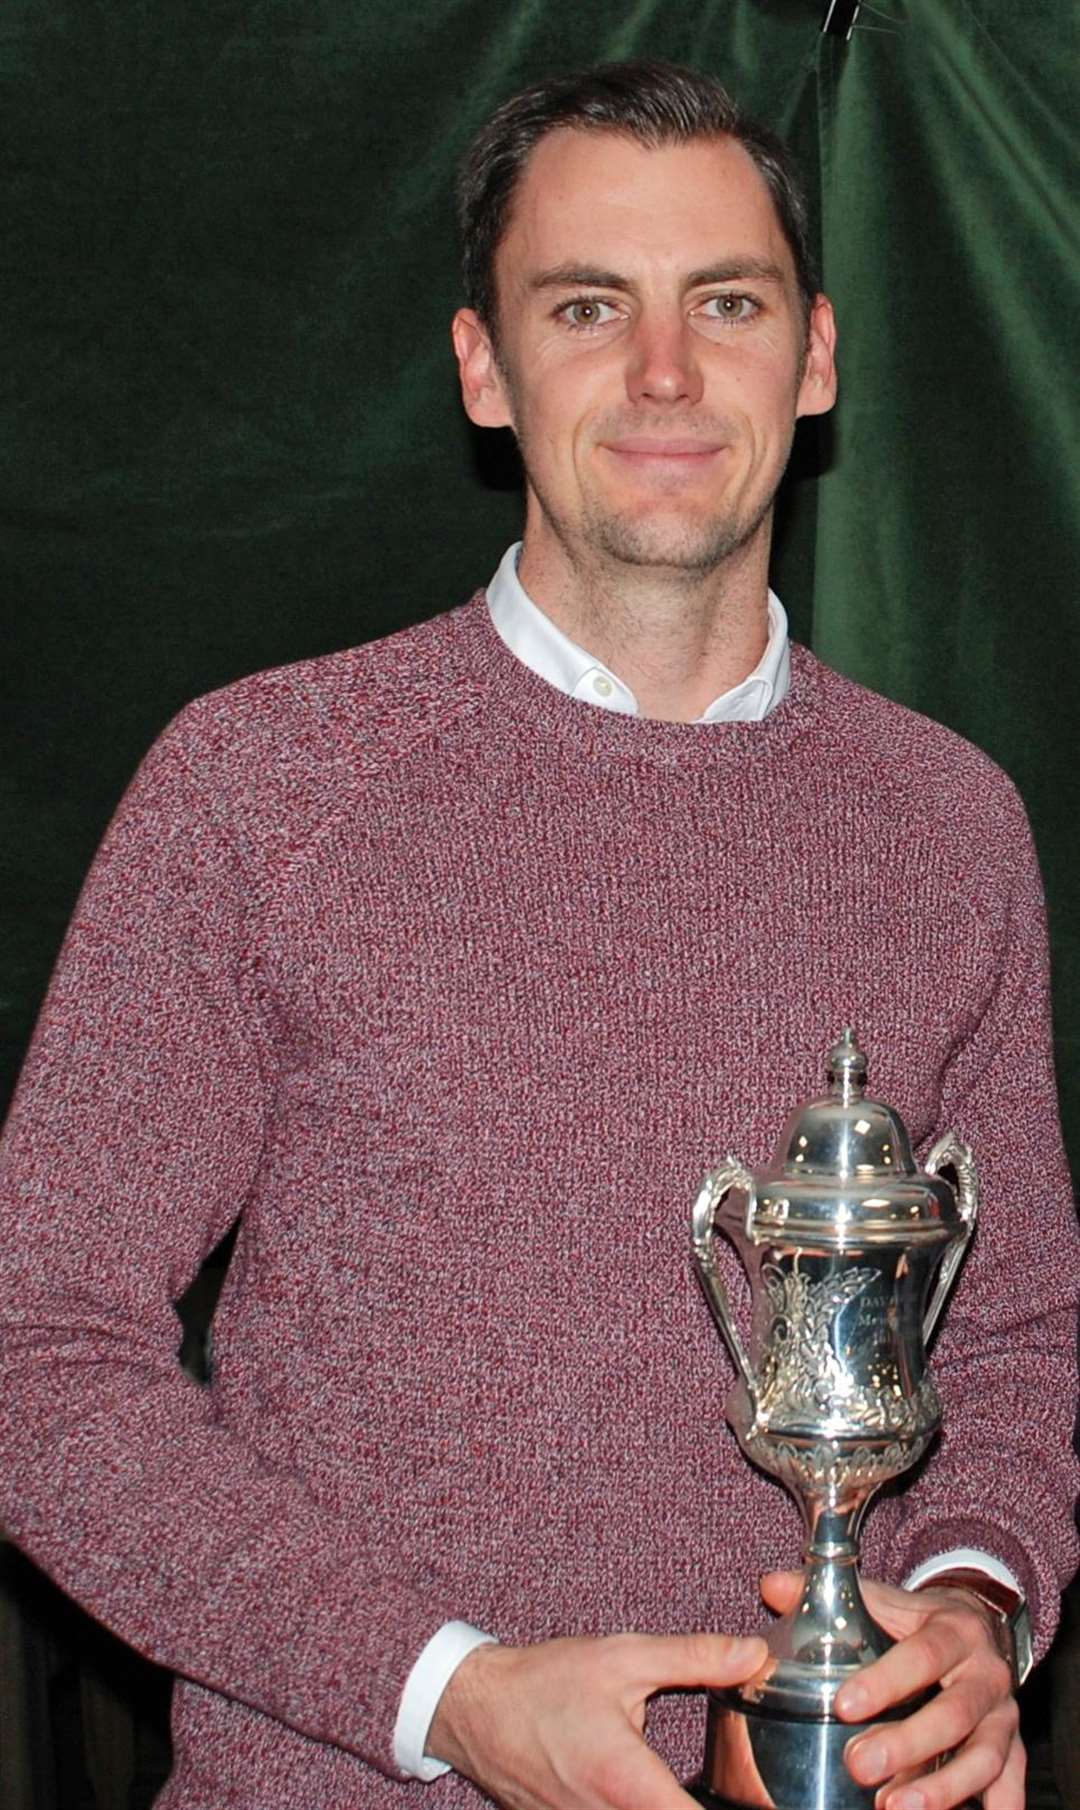 Rob McGarr won the Sandy Gray-Smith Medal at Burghley Park on Sunday with a net 66. (2211395)